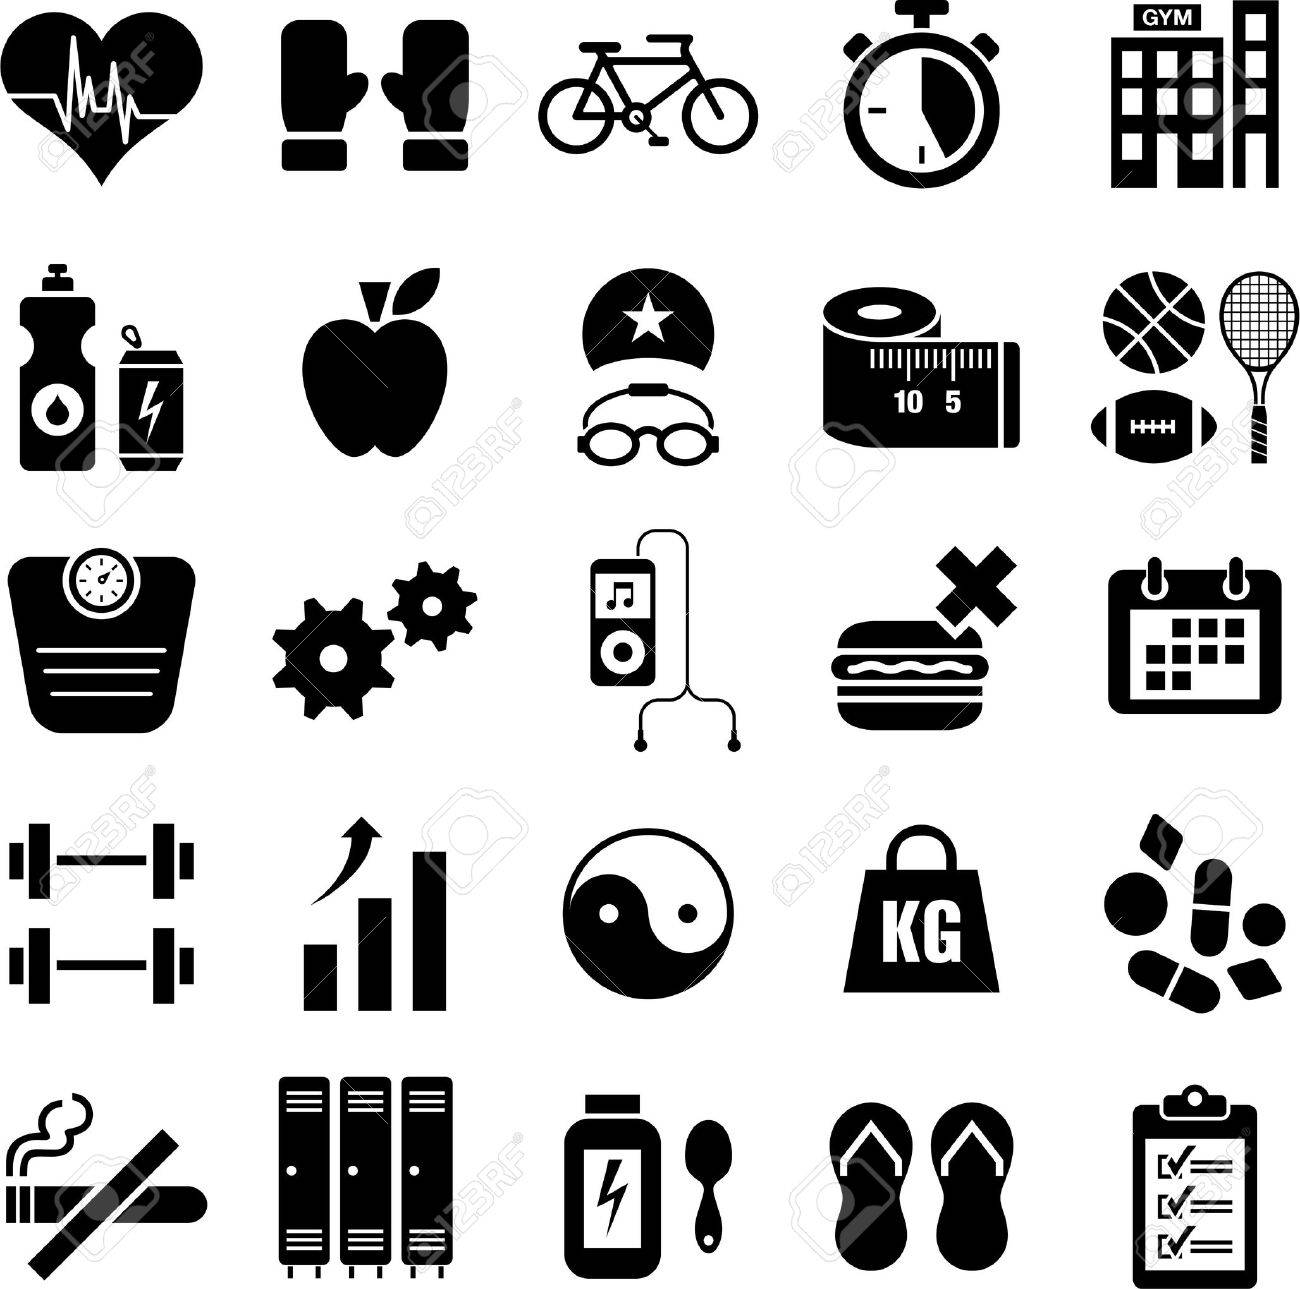 Wellness icon  Health And Wellness Icons Royalty Free Cliparts, Vectors, And Stock ...